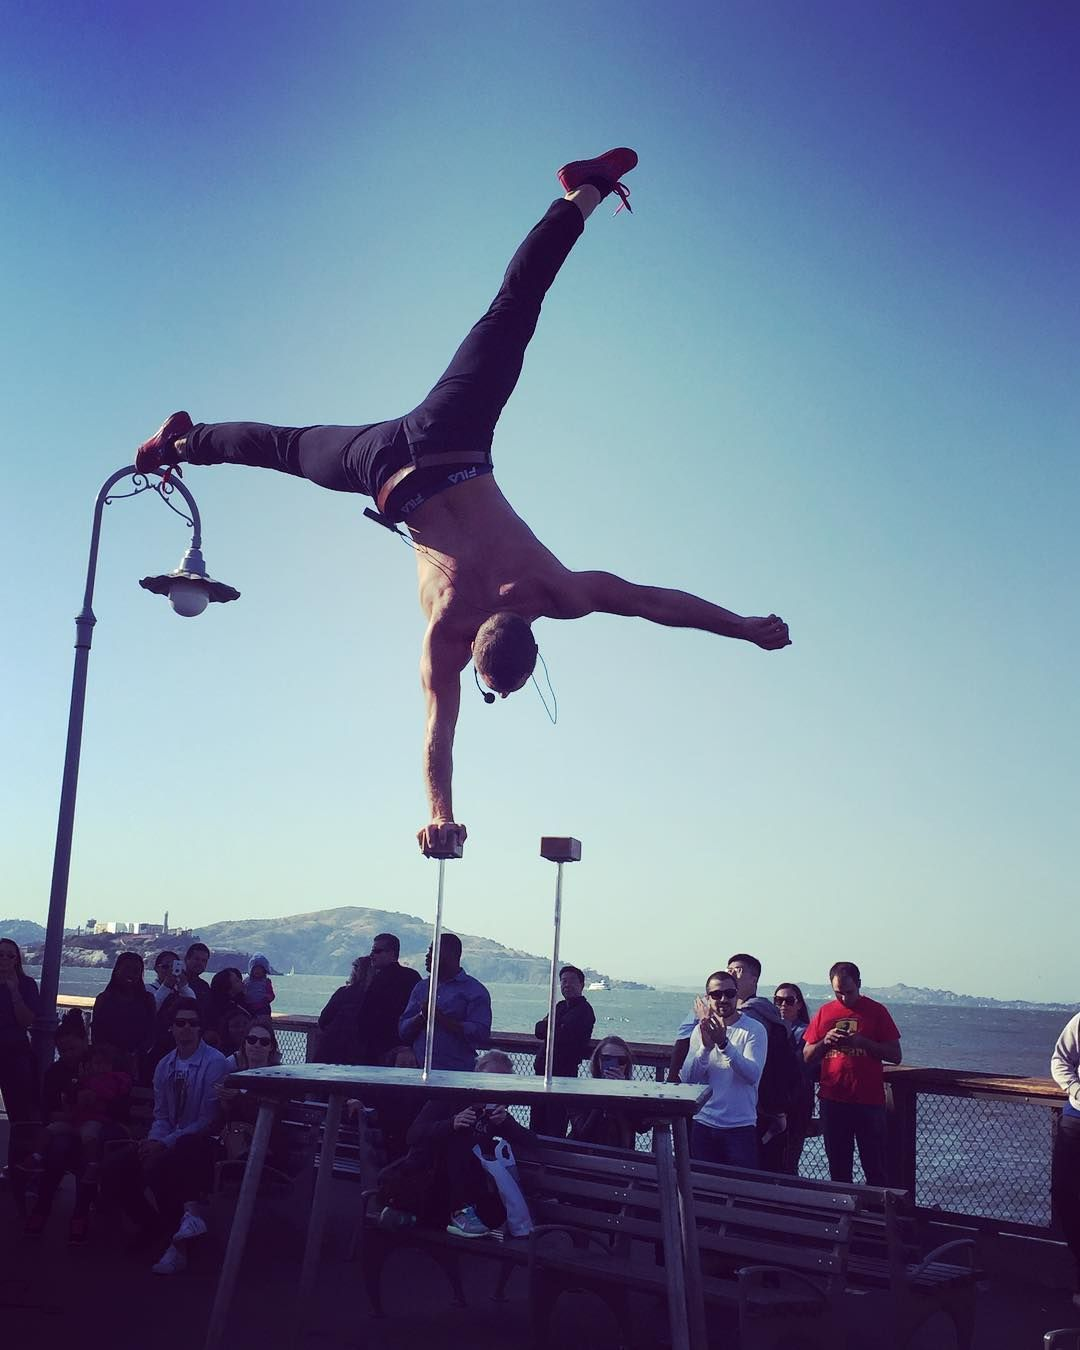 Amazing street performance by @orion_griffiths in #sanfrancisco #memorialdayweekend #vacation #bayarea #fishermanswharf #performance #streetperformer #photography #circus http://tipsrazzi.com/ipost/1524350403779662457/?code=BUnlJ2qgpJ5